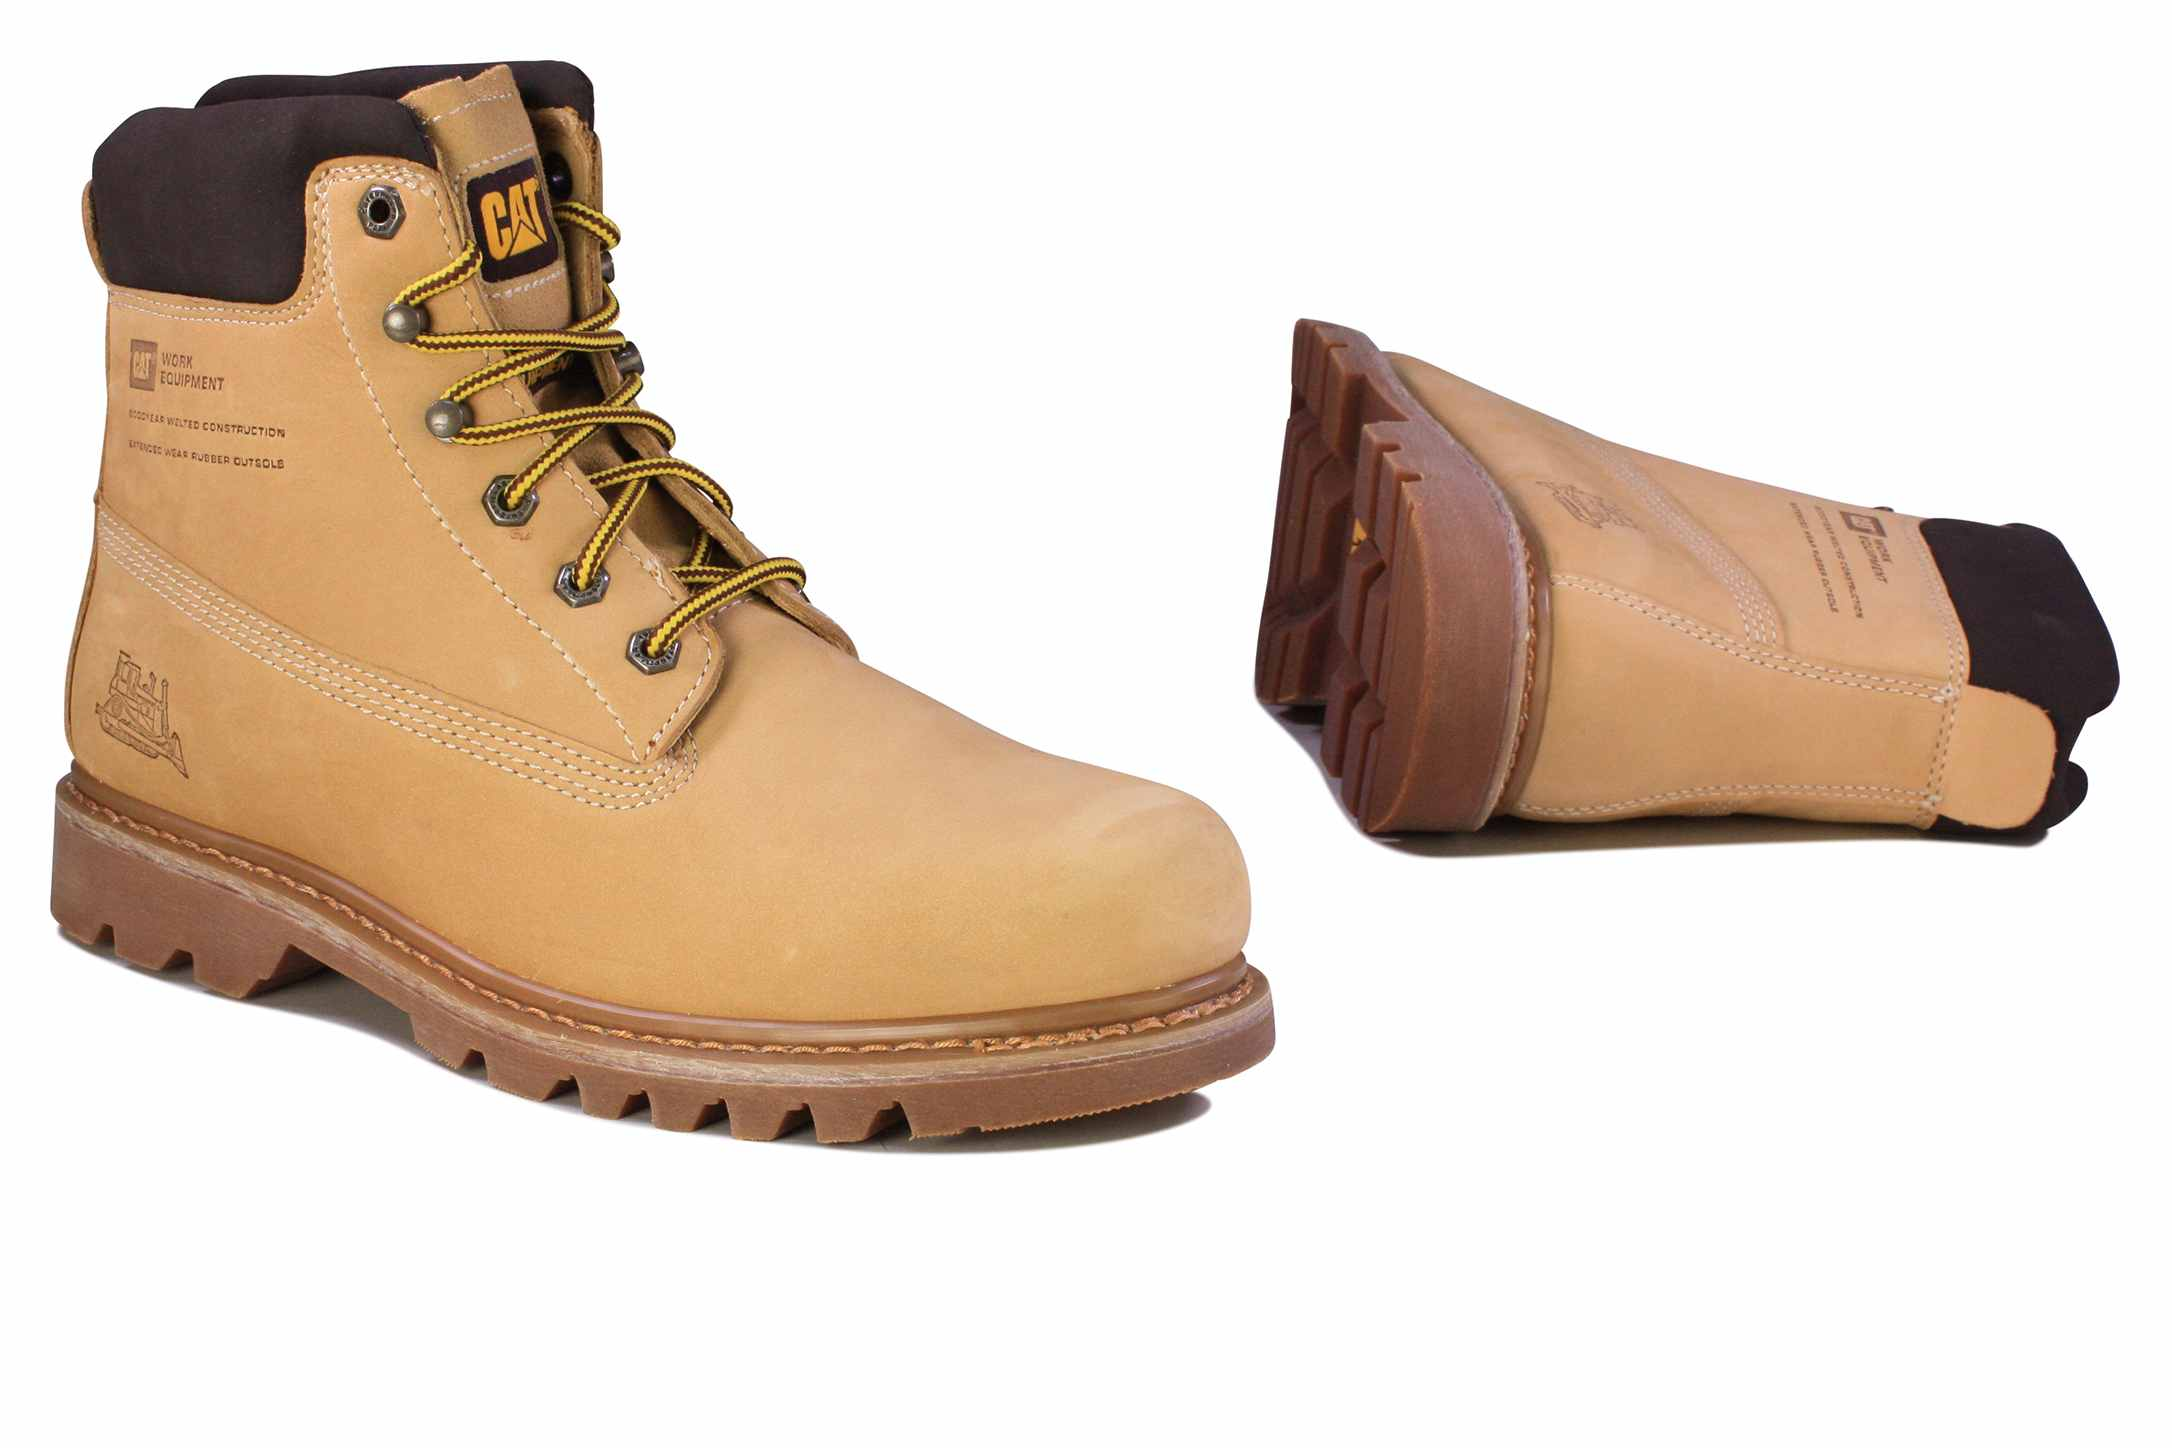 Mens Shoe Styles Brands Centre D Island Shoes Hikers Boots Fashionable Brown Bruiser P701221